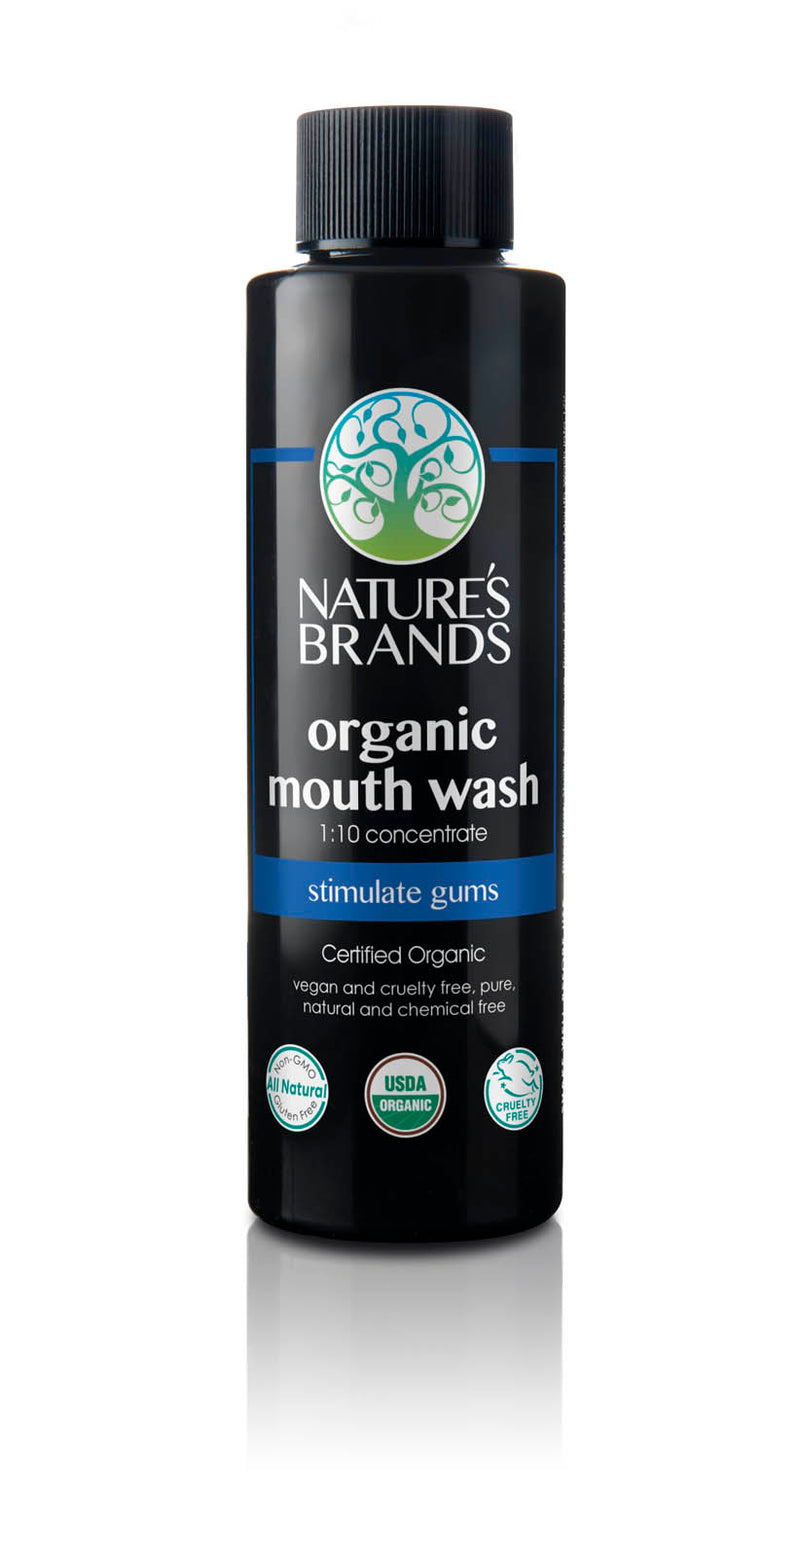 Herbal Choice Mari Organic Mouth Wash, 1:10 Concentrate - Herbal Choice Mari Organic Mouth Wash, 1:10 Concentrate - Herbal Choice Mari Organic Mouth Wash, 1:10 Concentrate